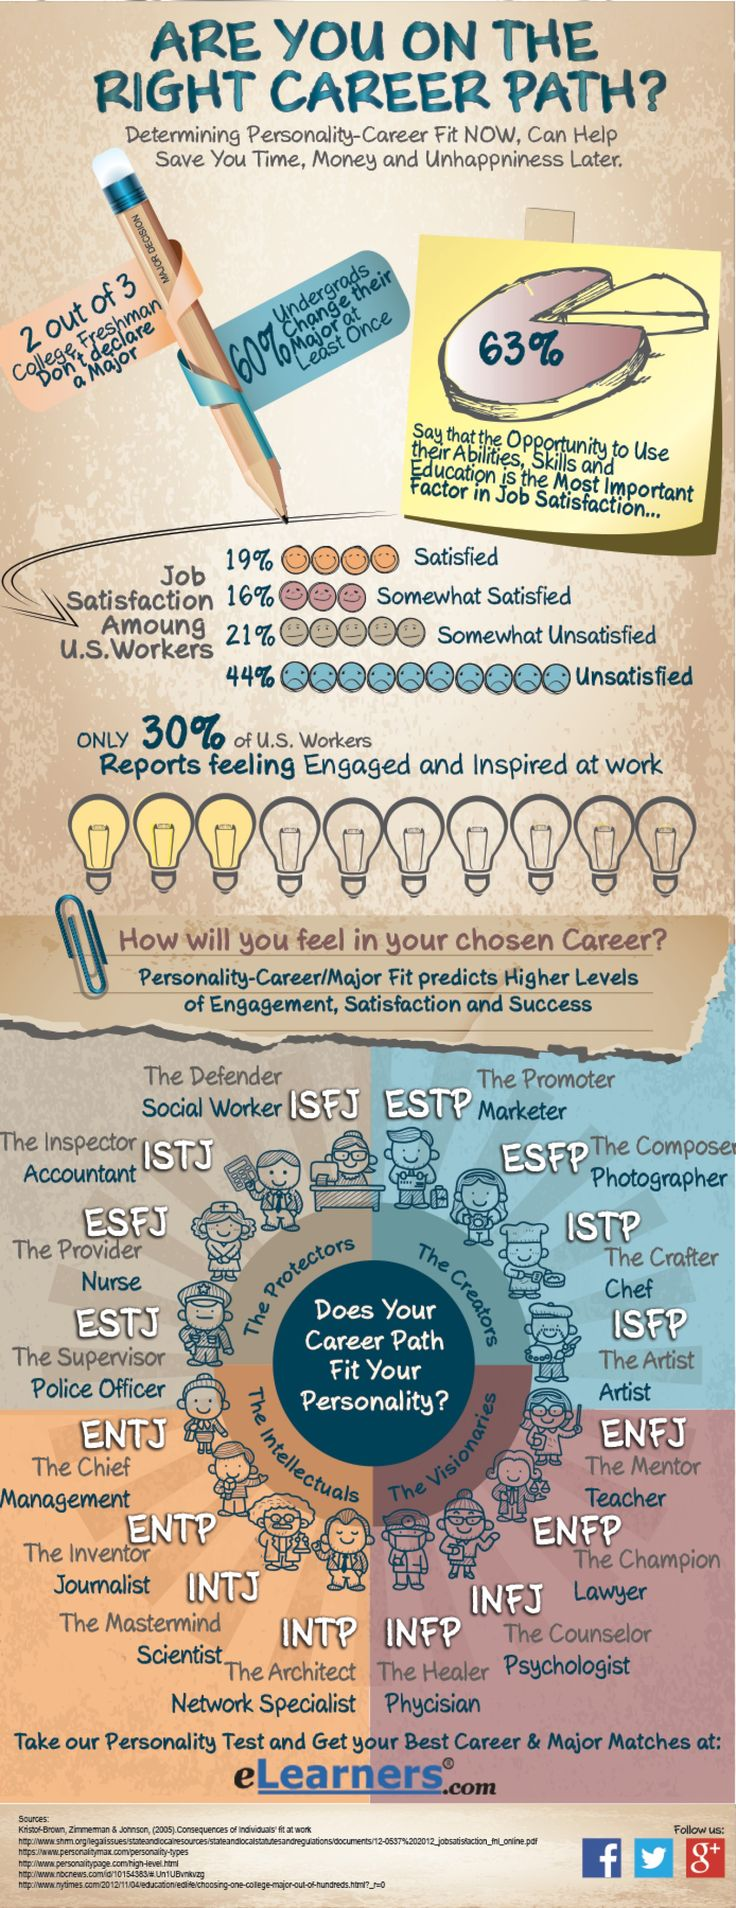 best ideas about choosing a career career path 17 best ideas about choosing a career career path career planning and career choices